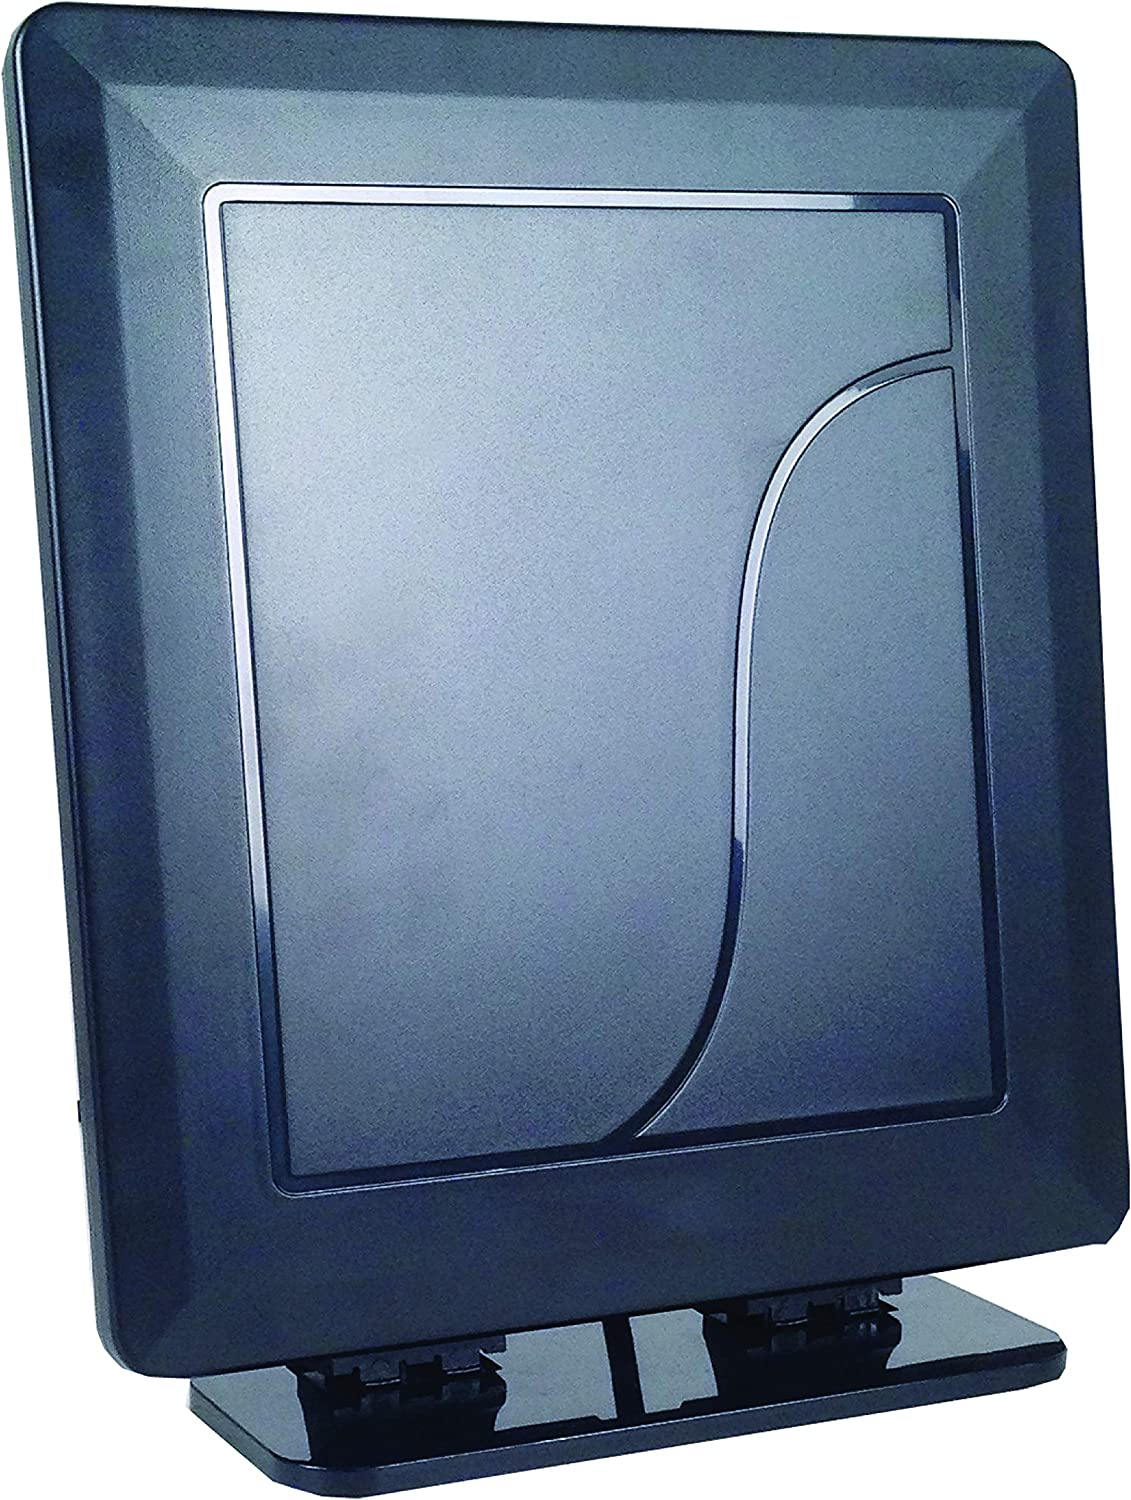 SuperSonic SC-611 HDTV Digital Indoor Antenna: Supports 1080p Broadcasts